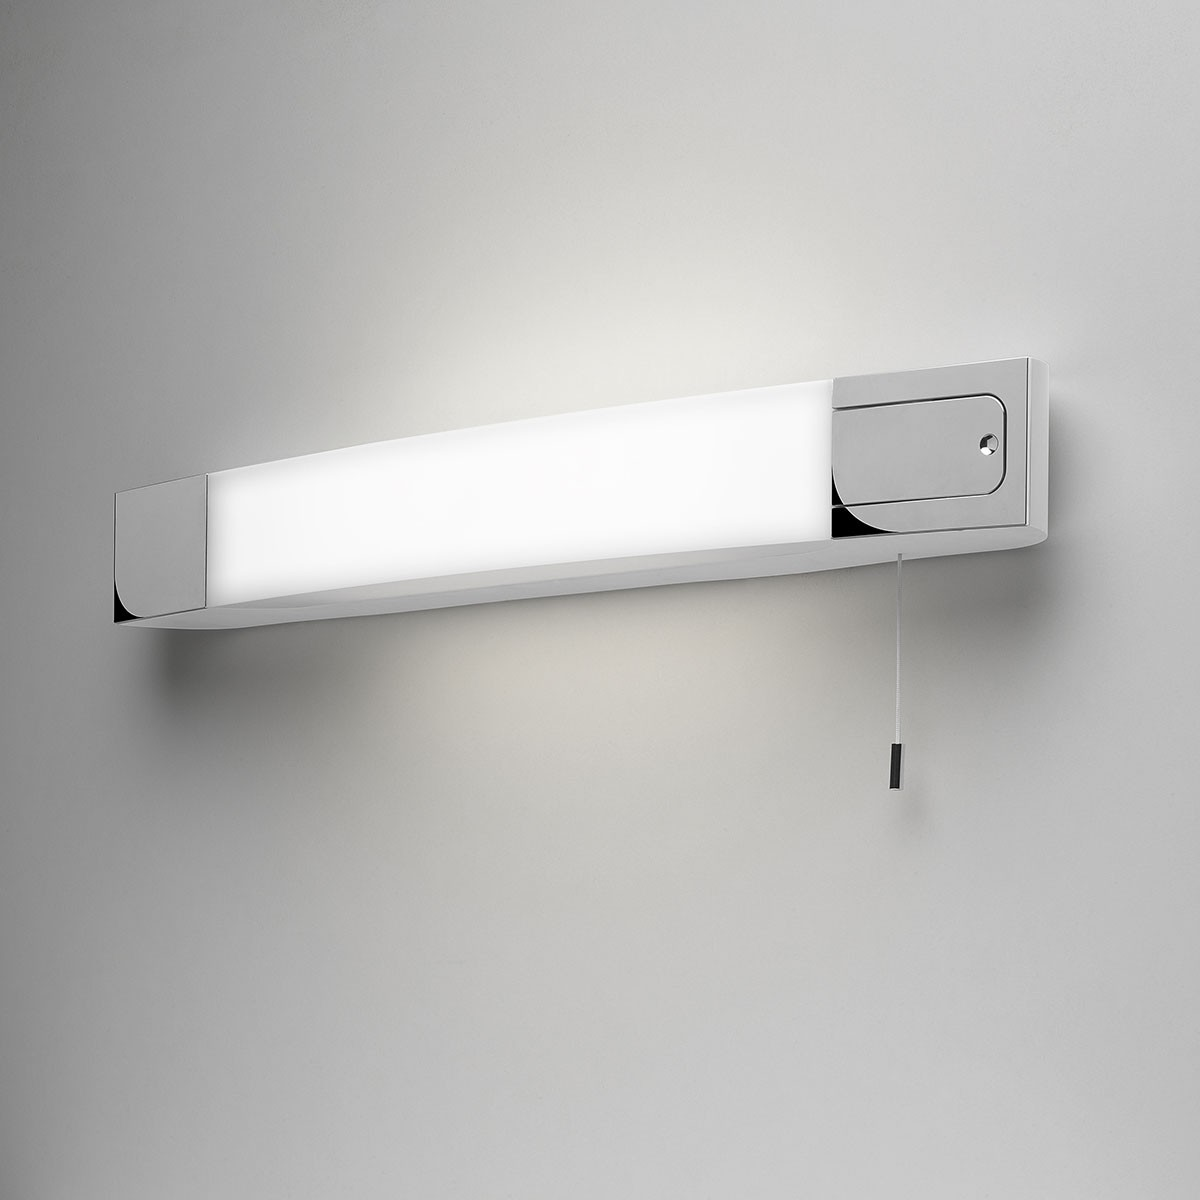 Astro ixtra shaverlight polished chrome bathroom wall for Neon salle de bain avec interrupteur